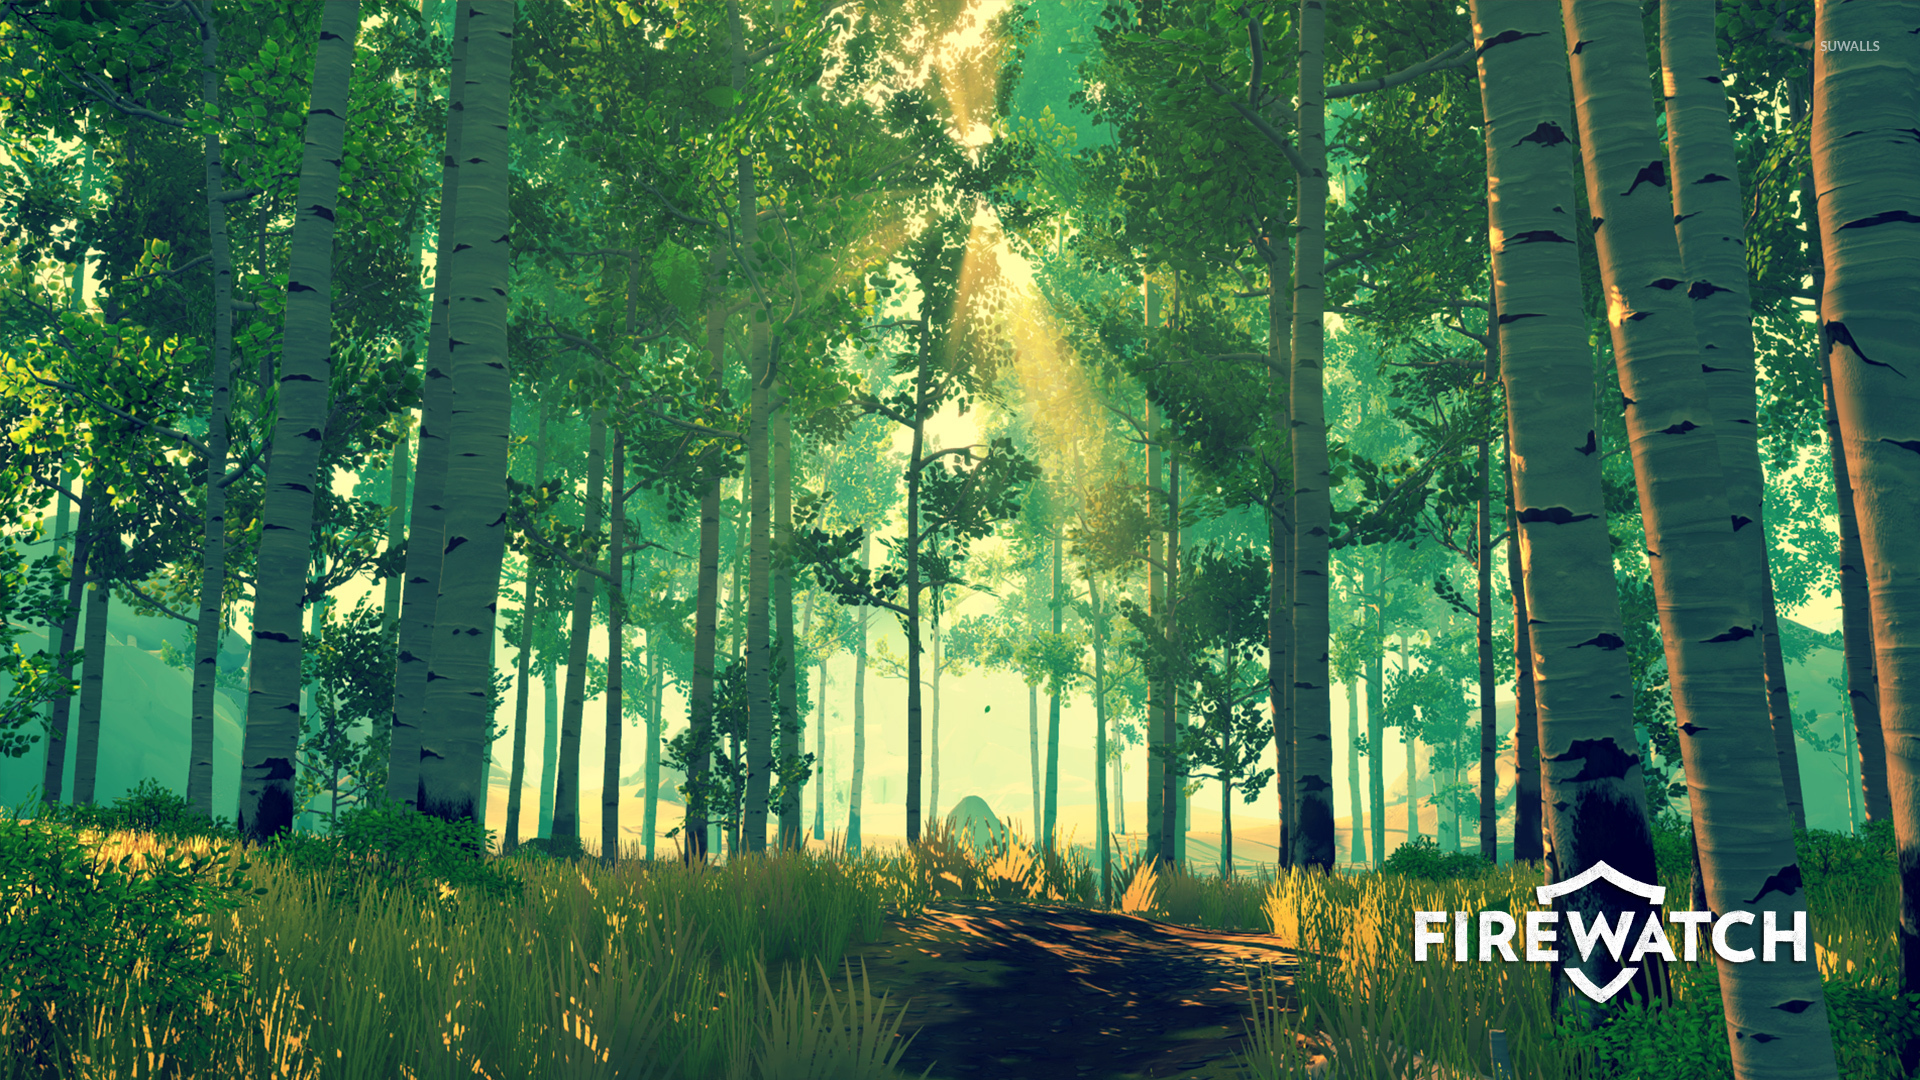 Sun Rays In The Green Forest In Firewatch Wallpaper Game